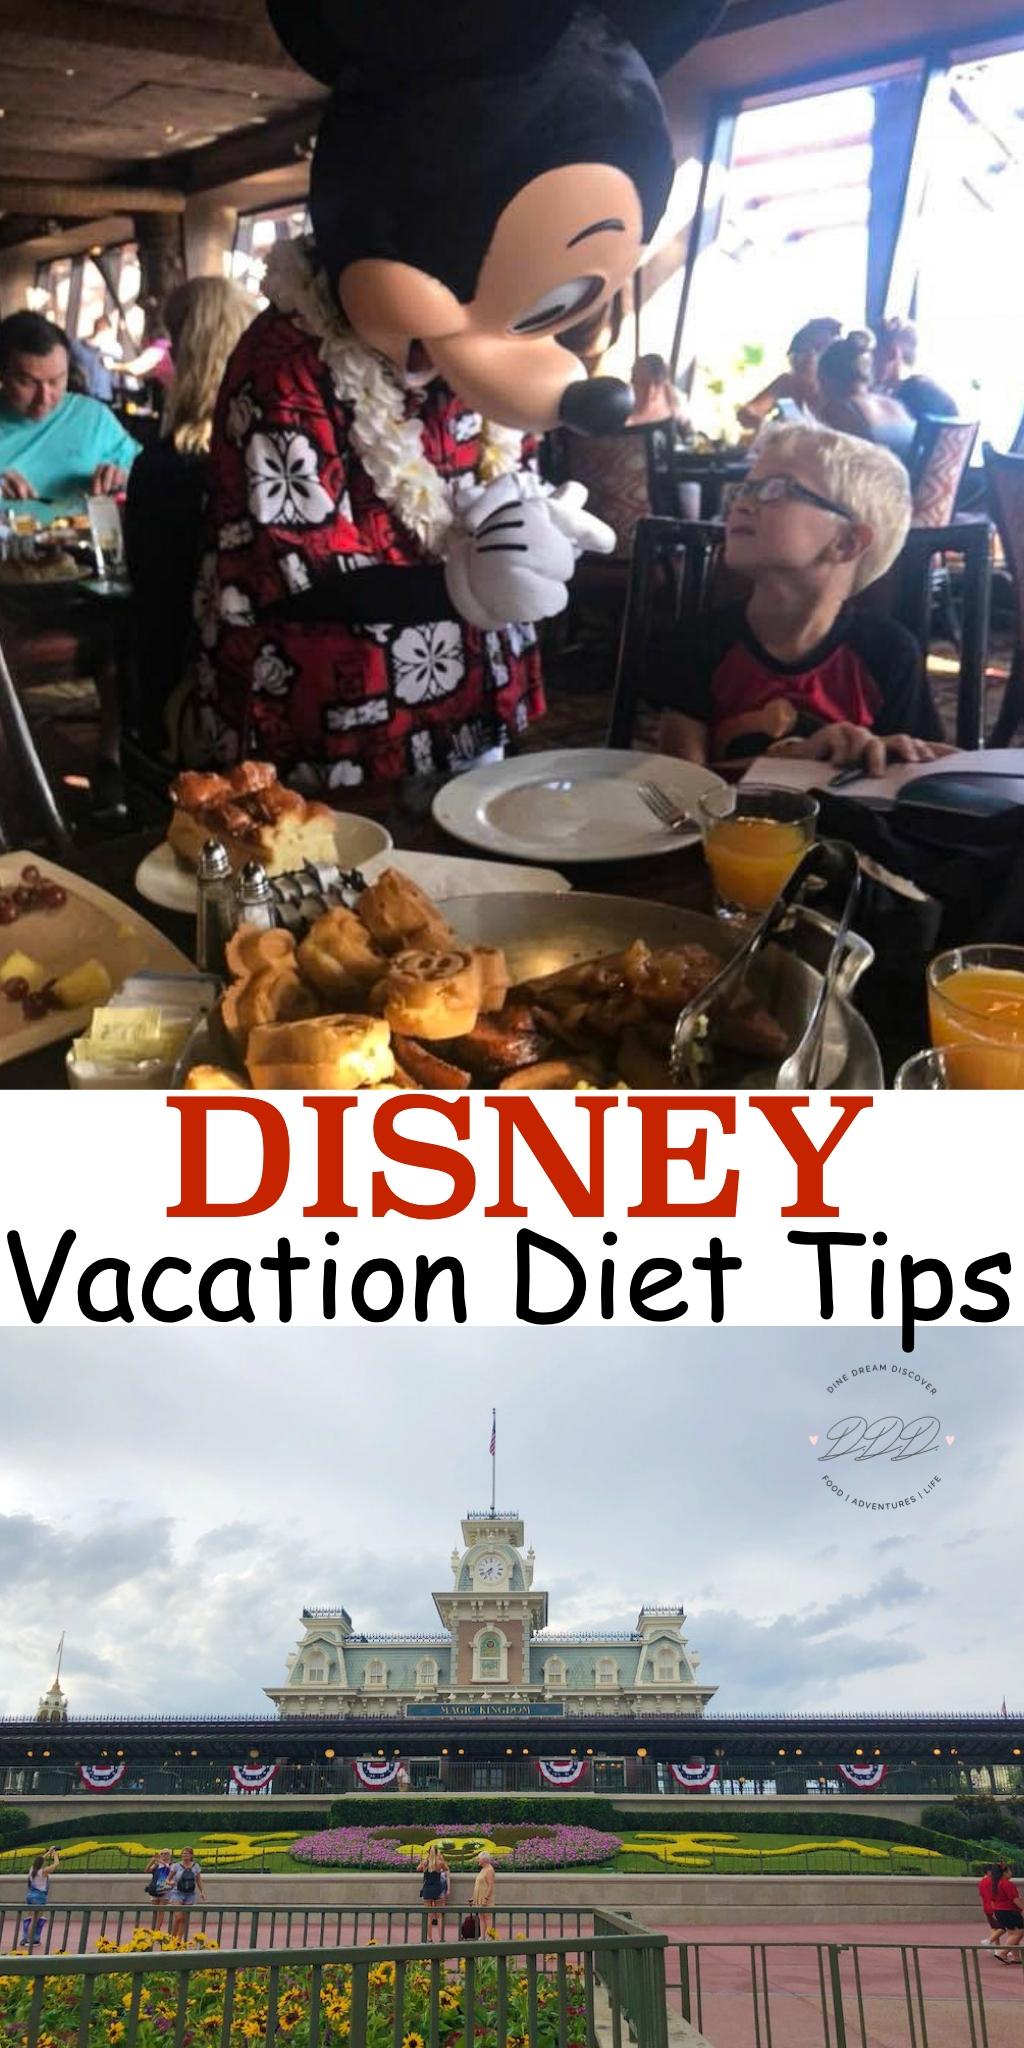 Dieting at Disney World, no matter what diet you are on, can be managed with very low effort. Here are some easy to follow Disney vacation diet tips.